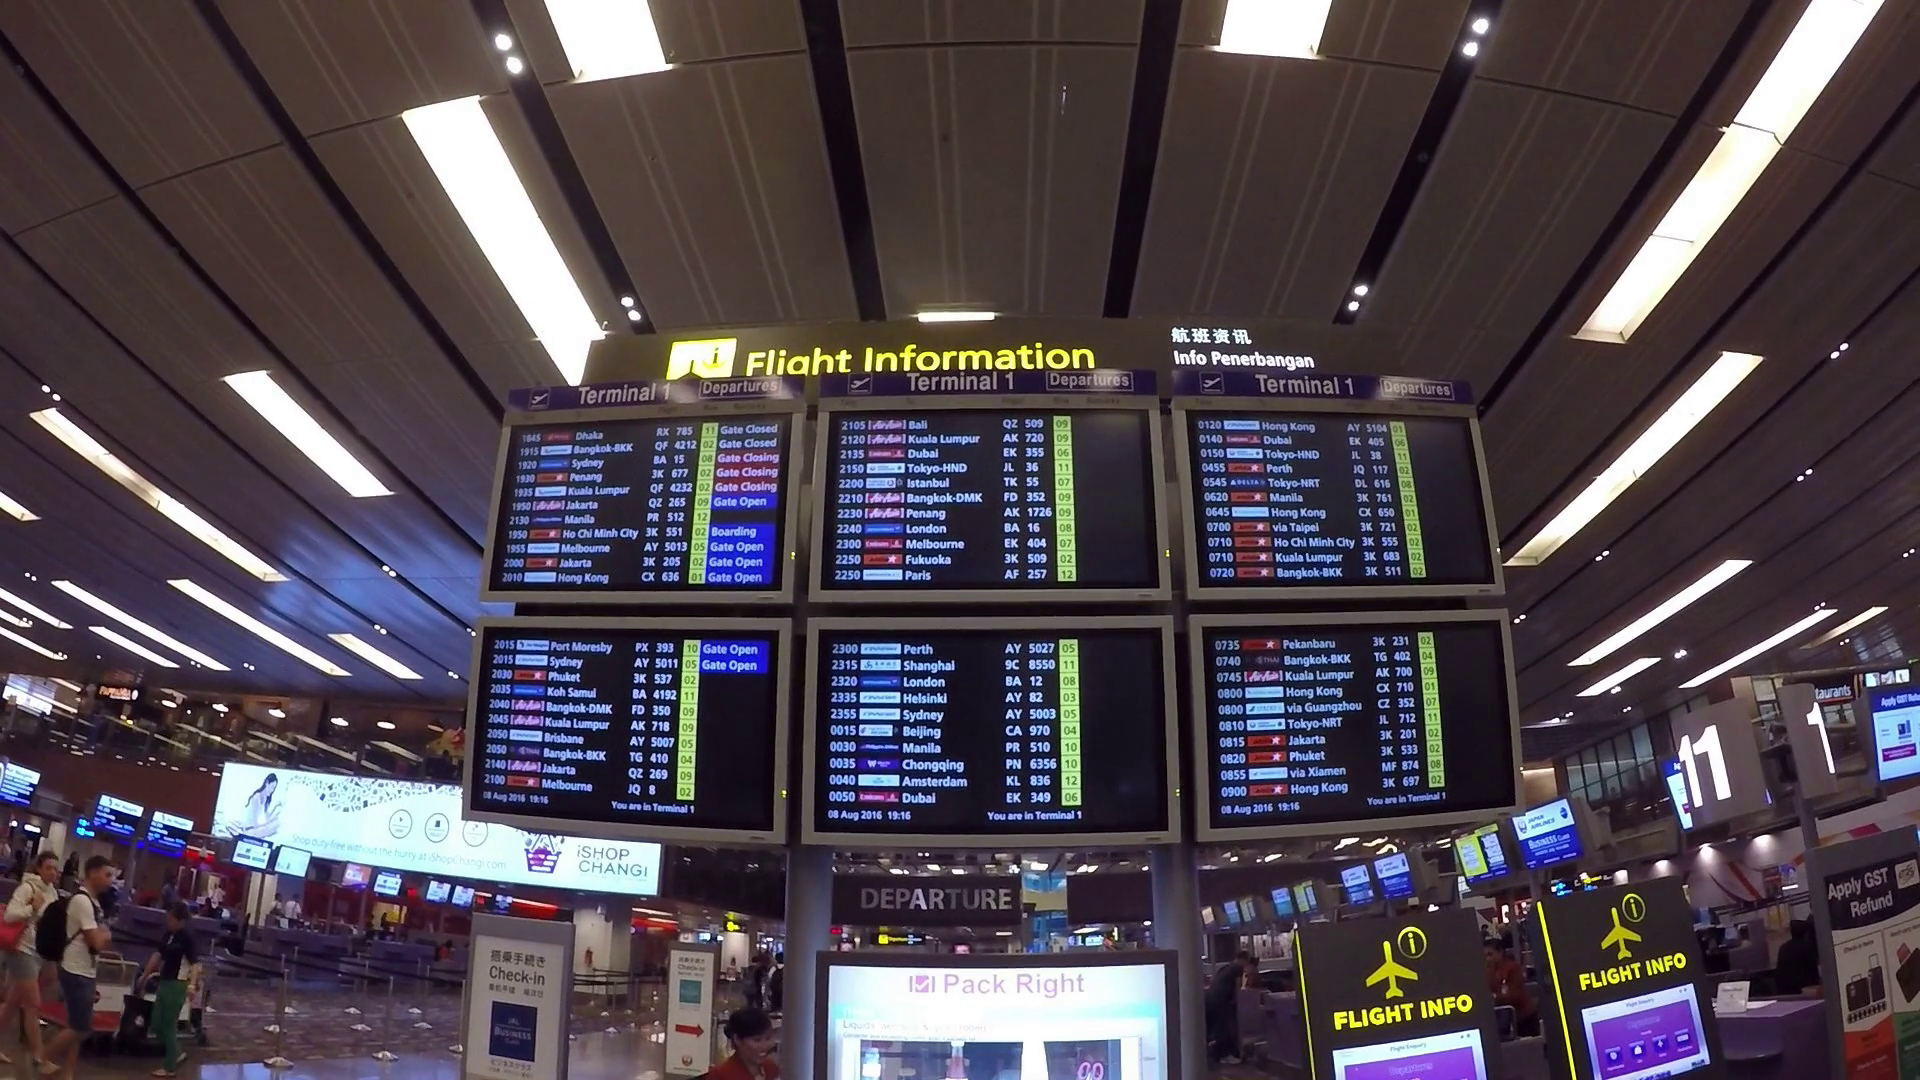 Flight Information and Schedule, Arrival, Departure at Airport Stock Video  Footage - Storyblocks